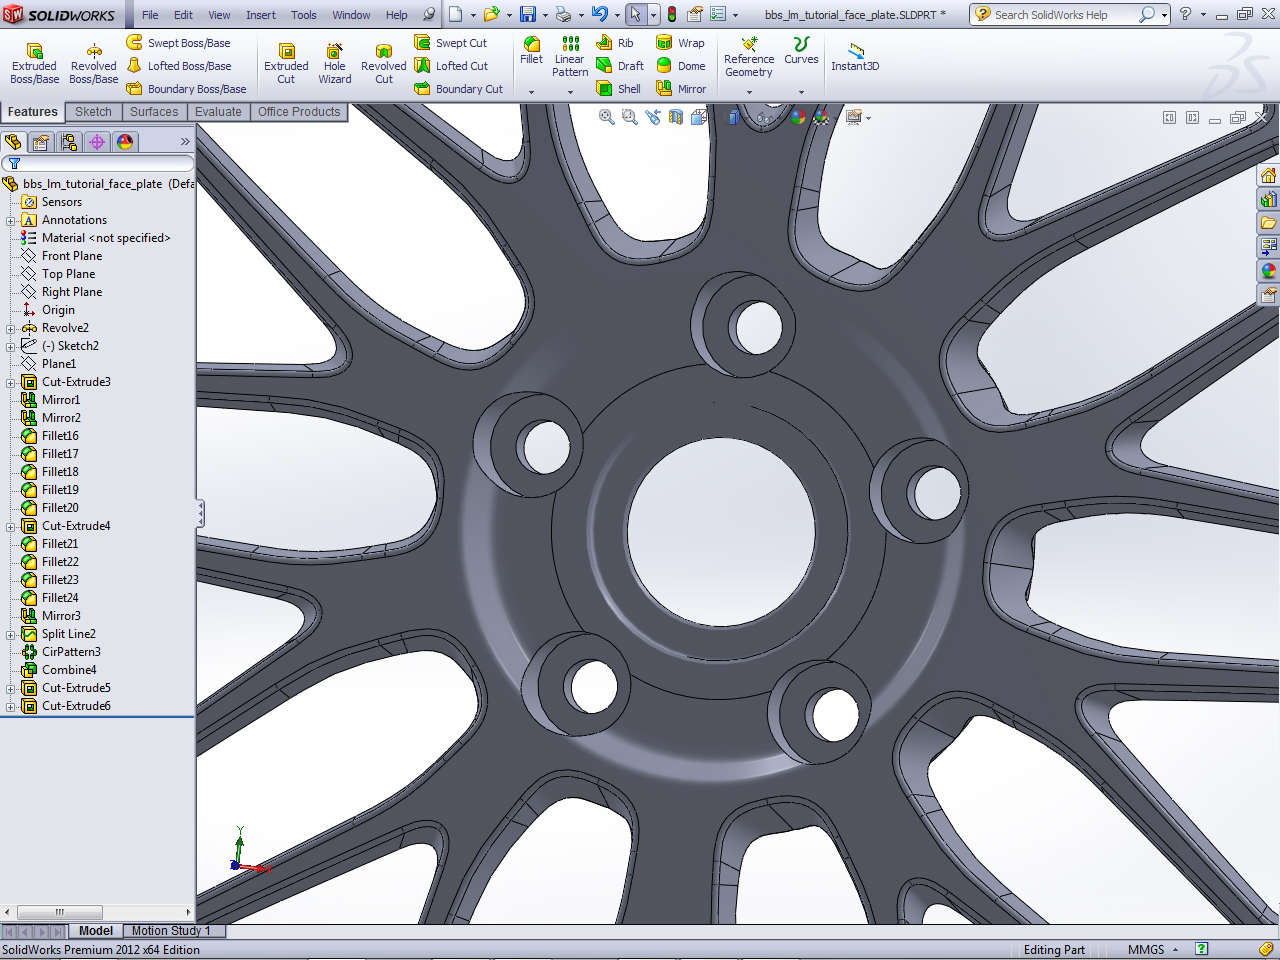 Tutorial how to model a bbs lm wheel in solidworks and show design ok lets wrap our work beginning with the lugnuts holes cut extrude through all a smaller diameter hole and cut extrude until the middle of the malvernweather Choice Image